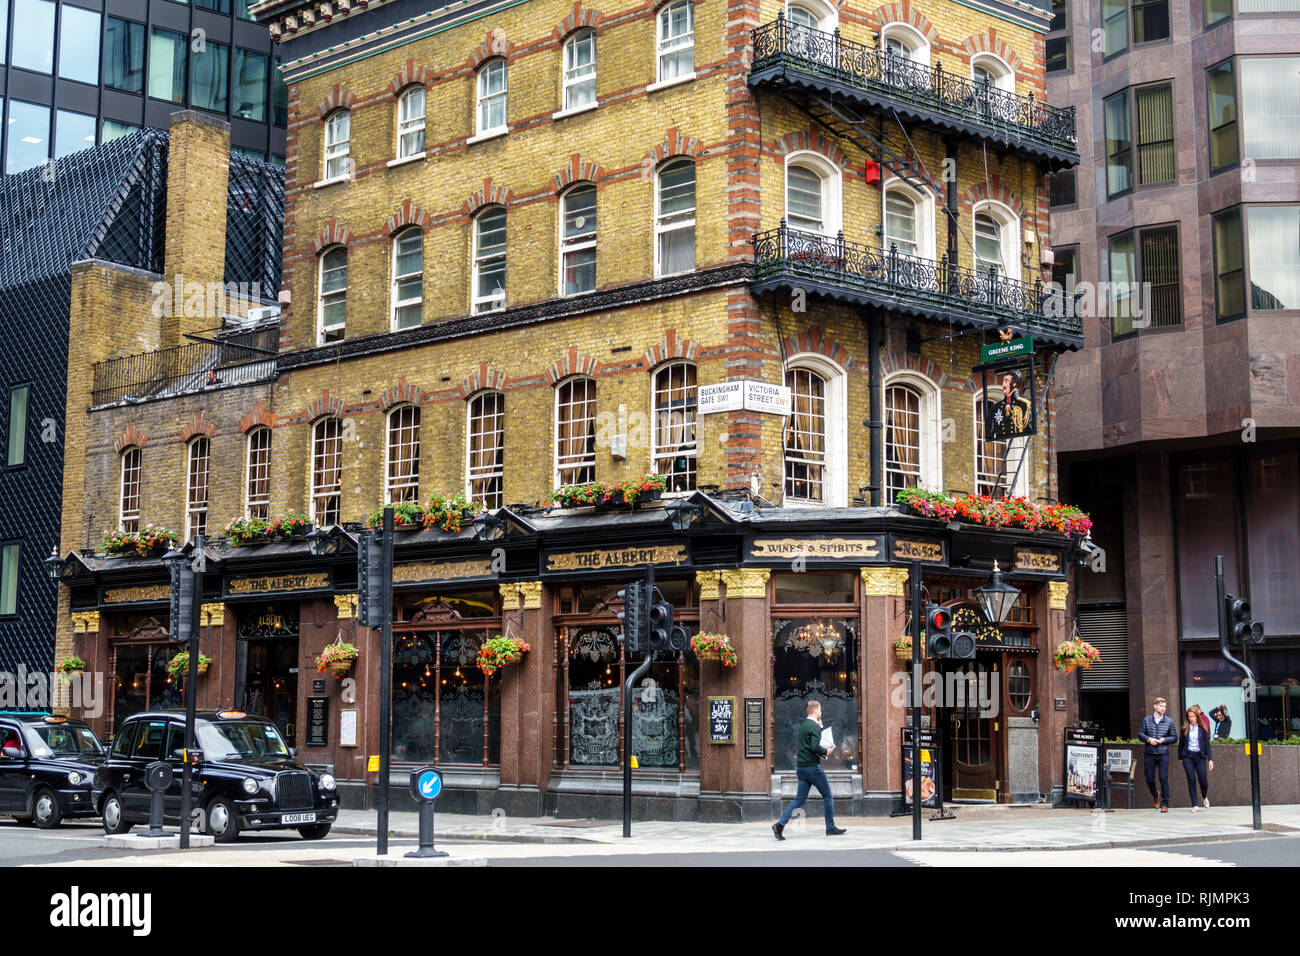 London England United Kingdom Great Britain Westminster The Albert Pub Victorian public house building exterior brick building black taxicab taxi hack - Stock Image